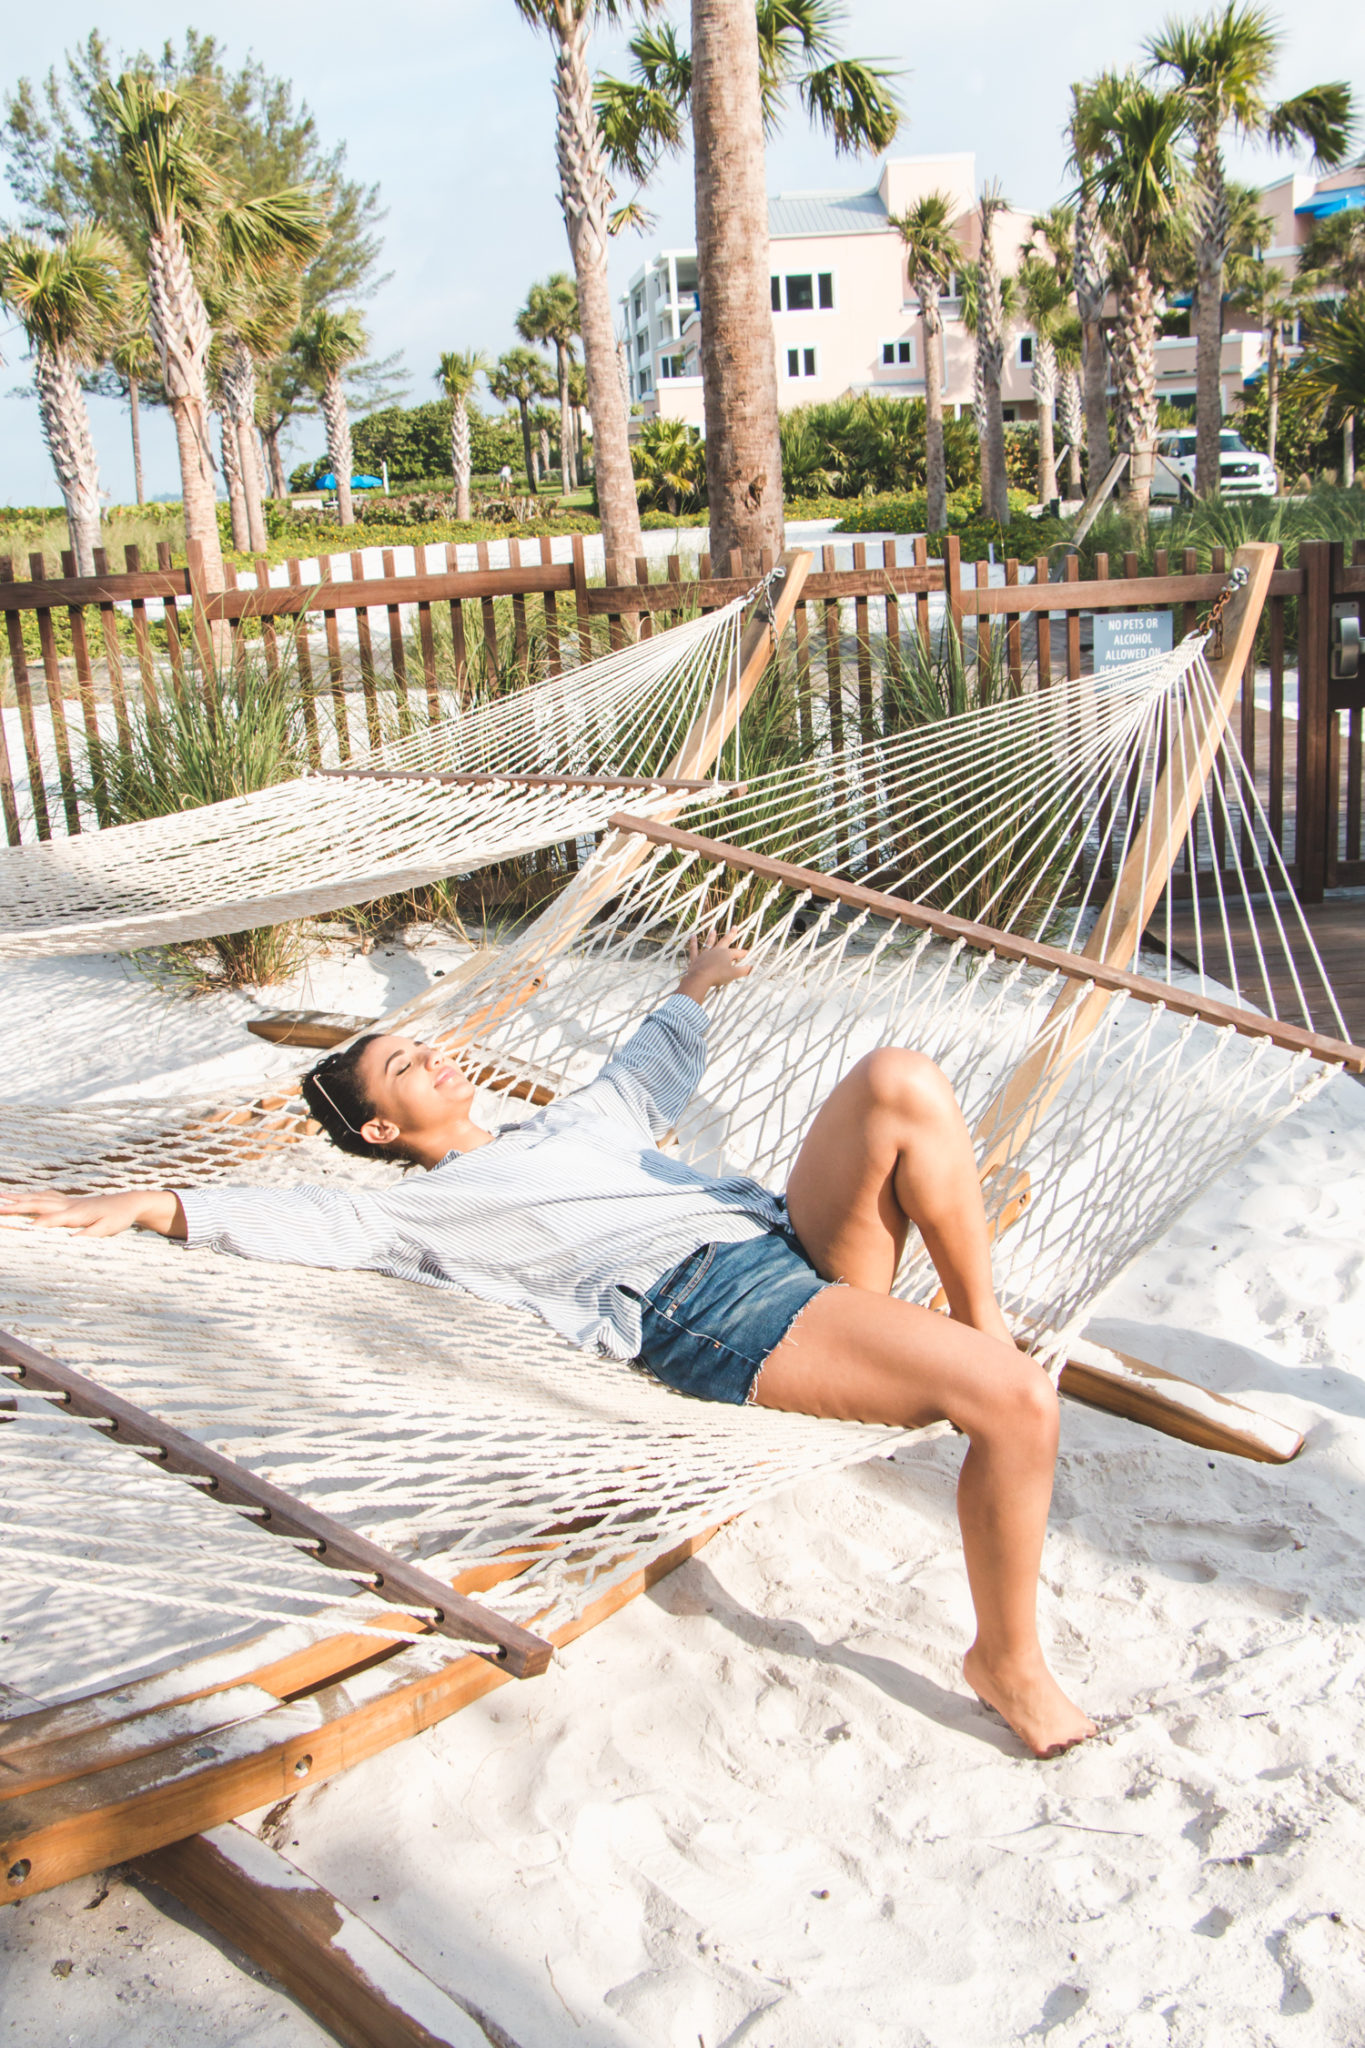 Weekend at Zota Beach Resort in Longboat Key, Florida- Monique McHugh Blog